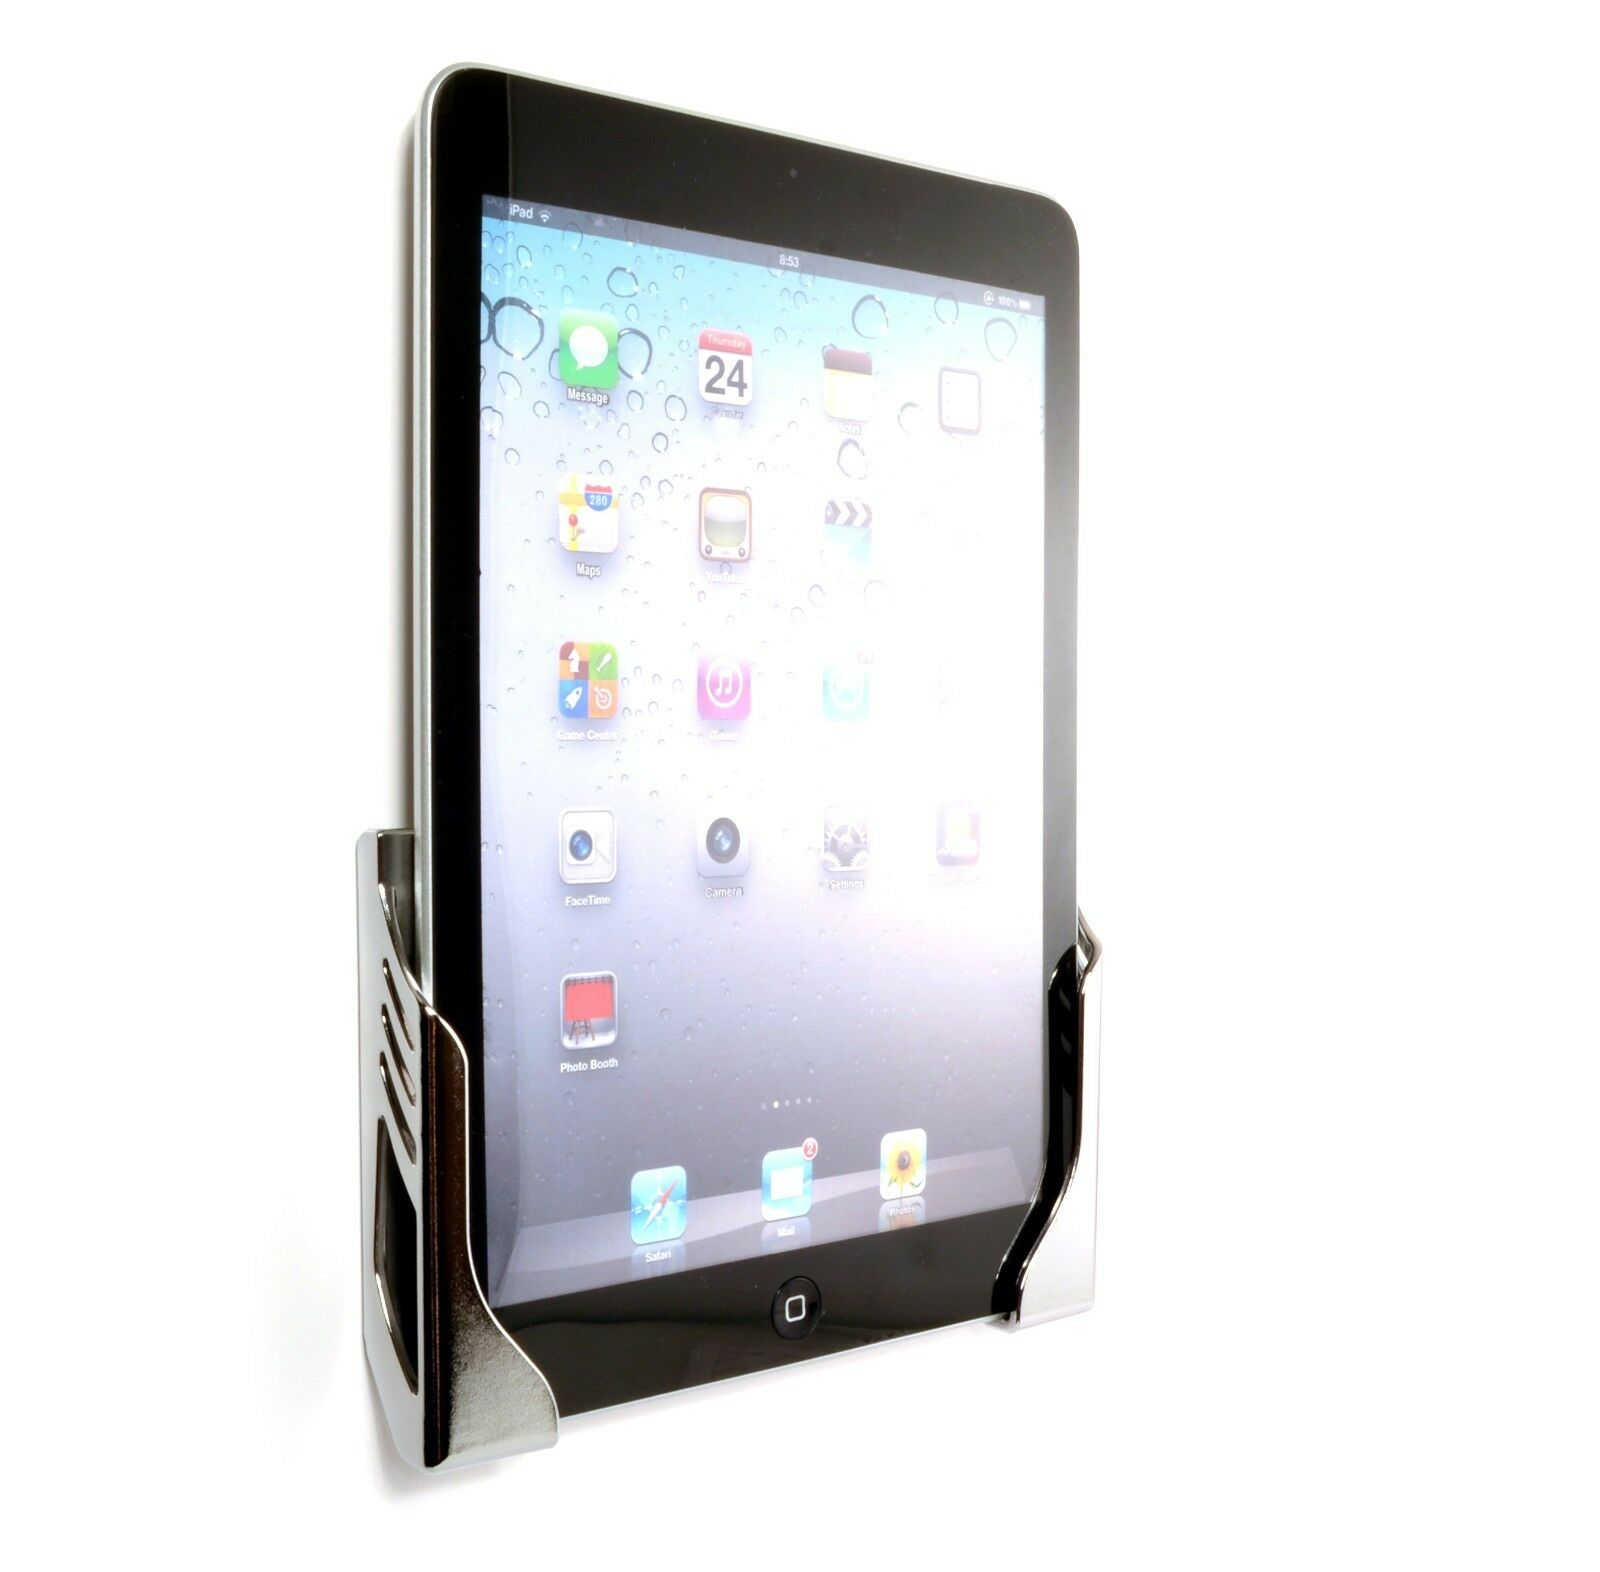 wall mount for ipad air air 2 dock and charge station. Black Bedroom Furniture Sets. Home Design Ideas